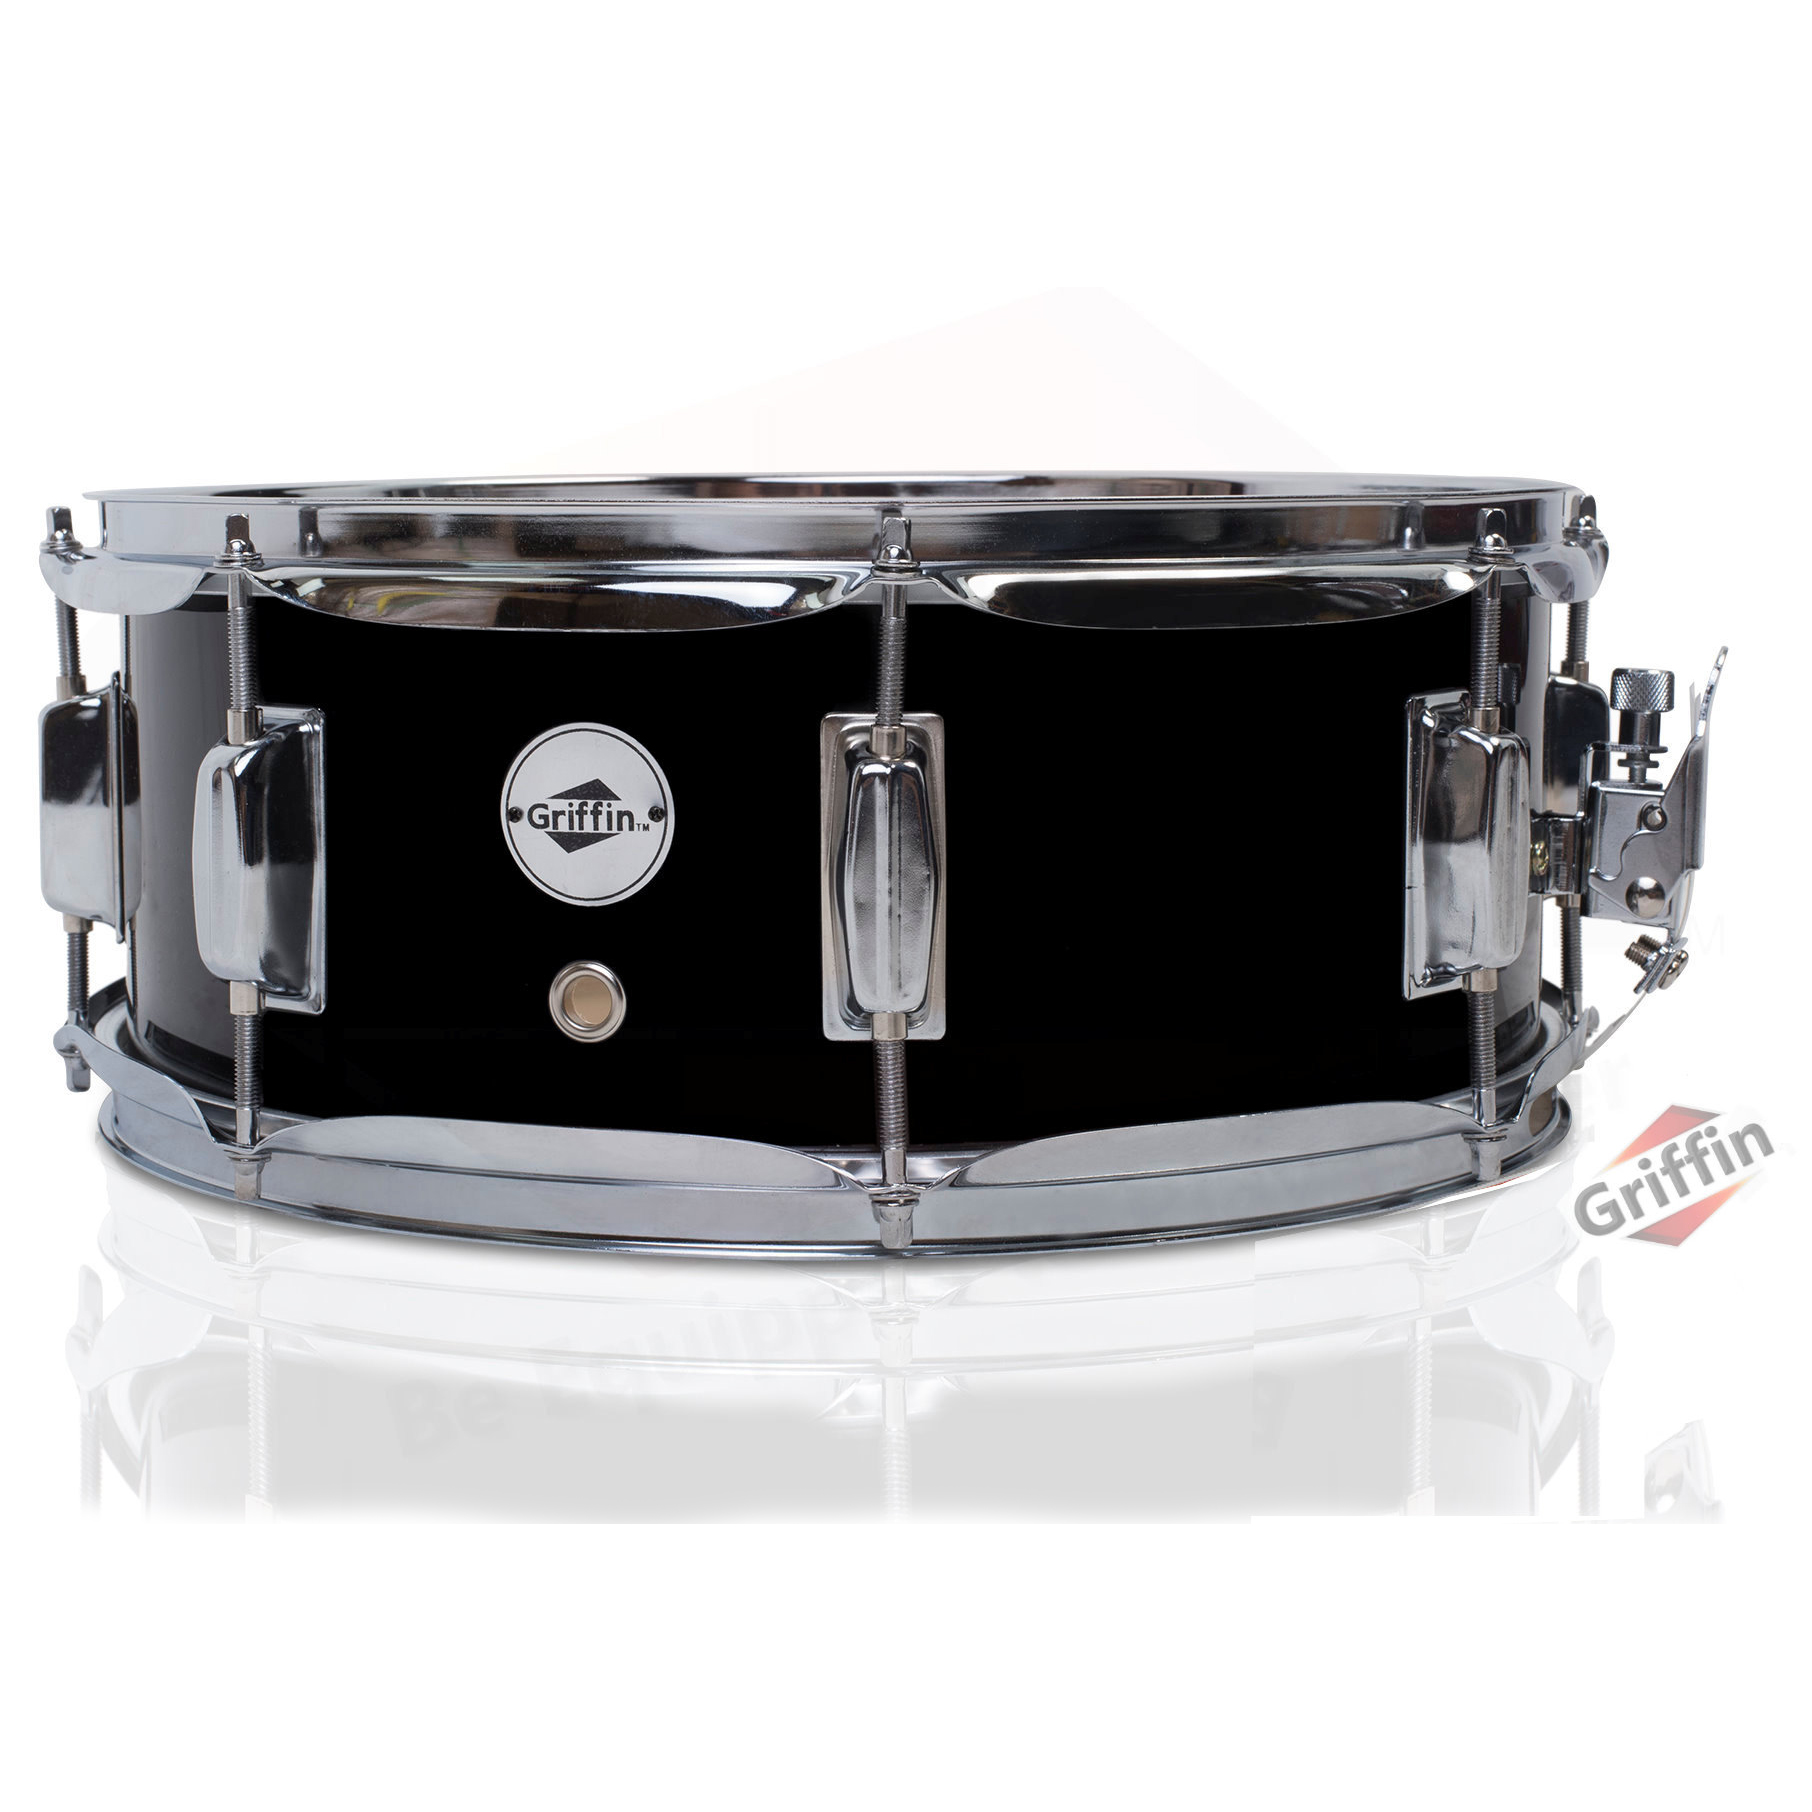 "Wood Snare Drum Black 14"" x 5.5"" Griffin"